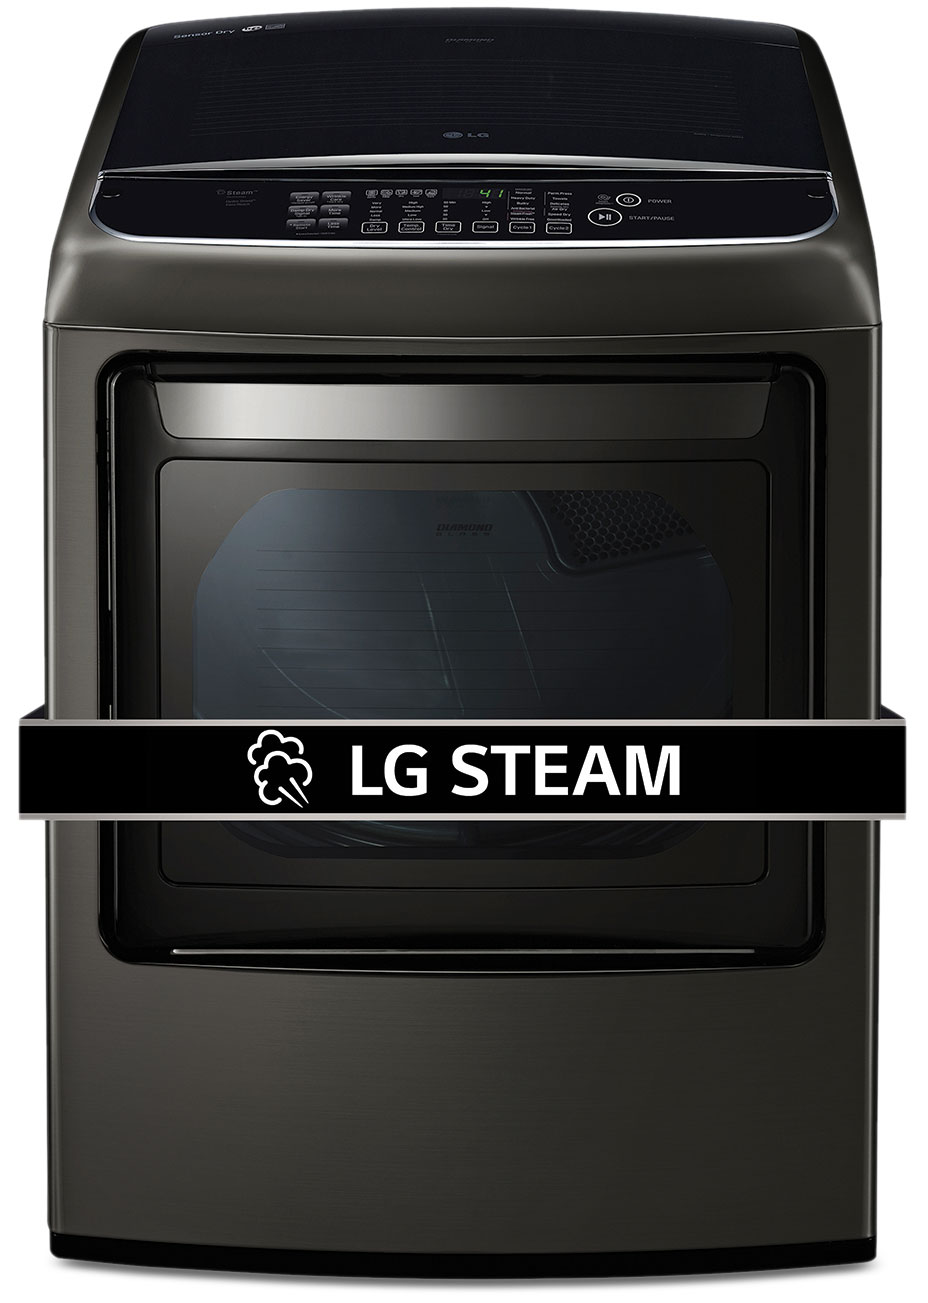 LG Appliances Black Stainless Steel Electric Dryer  (7.3 Cu. Ft.) - DLEY1901KE